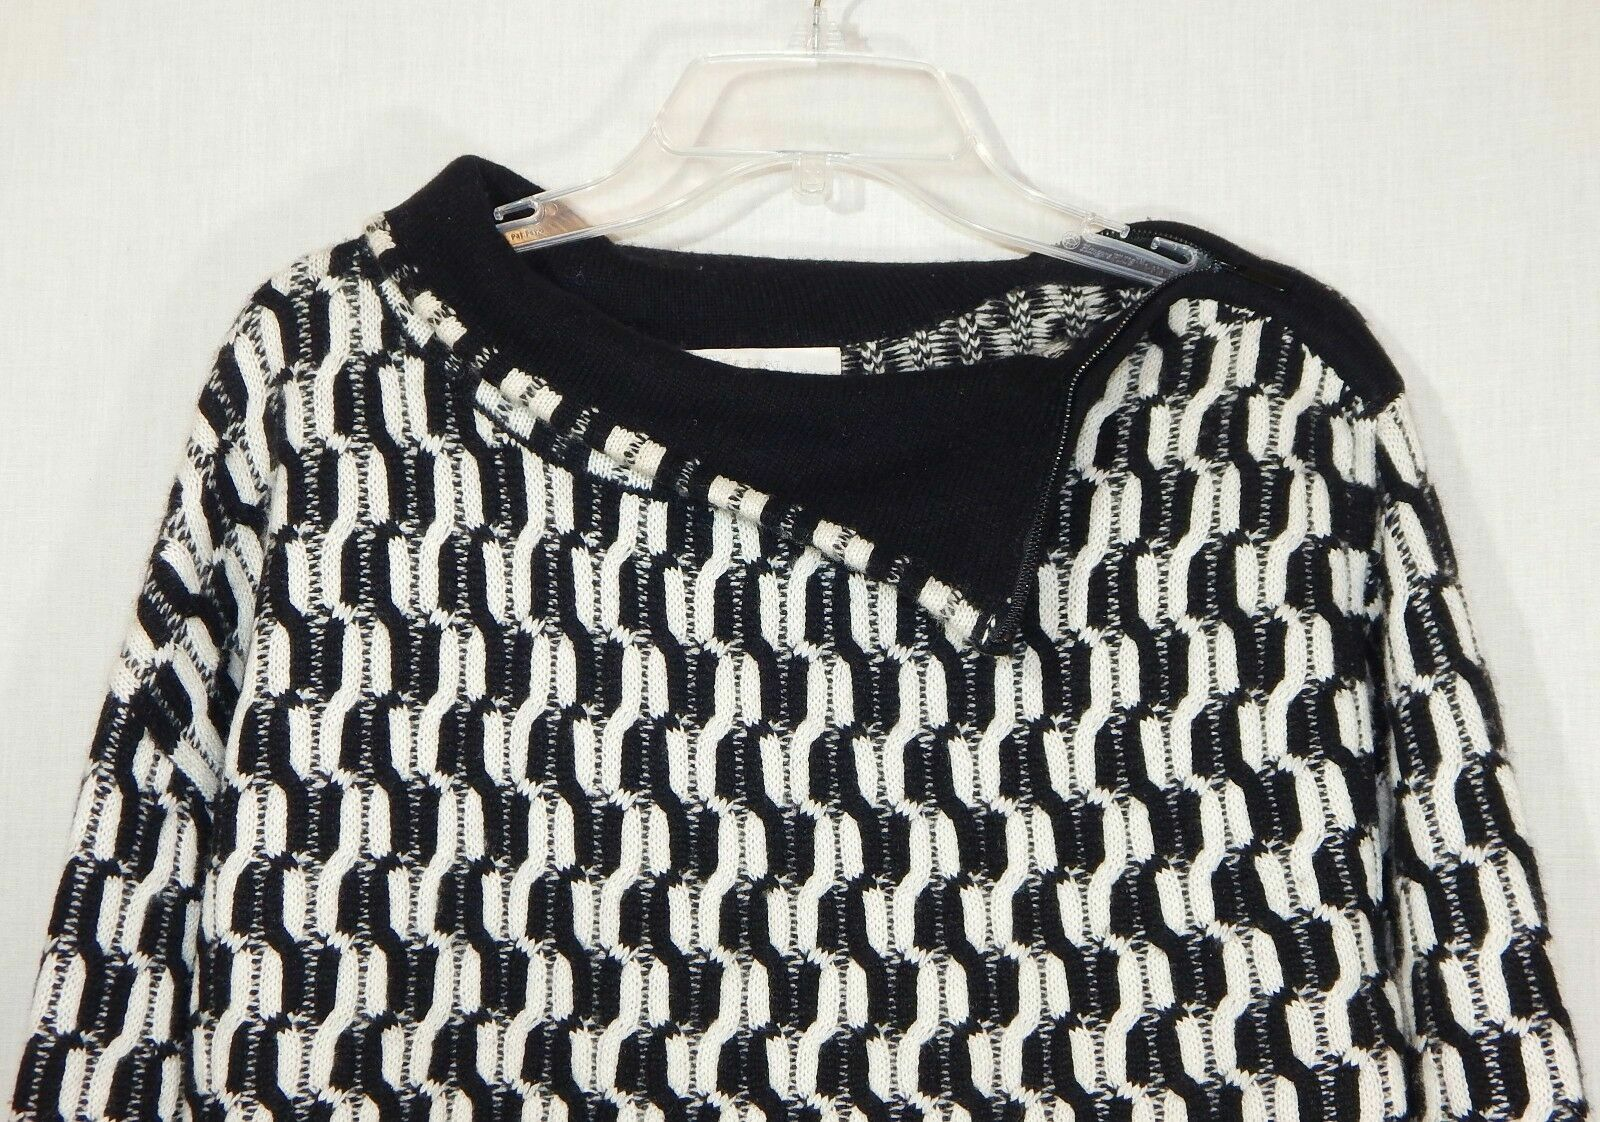 100% Cashmere NORDSTROM COLLECTION Black White Do… - image 10